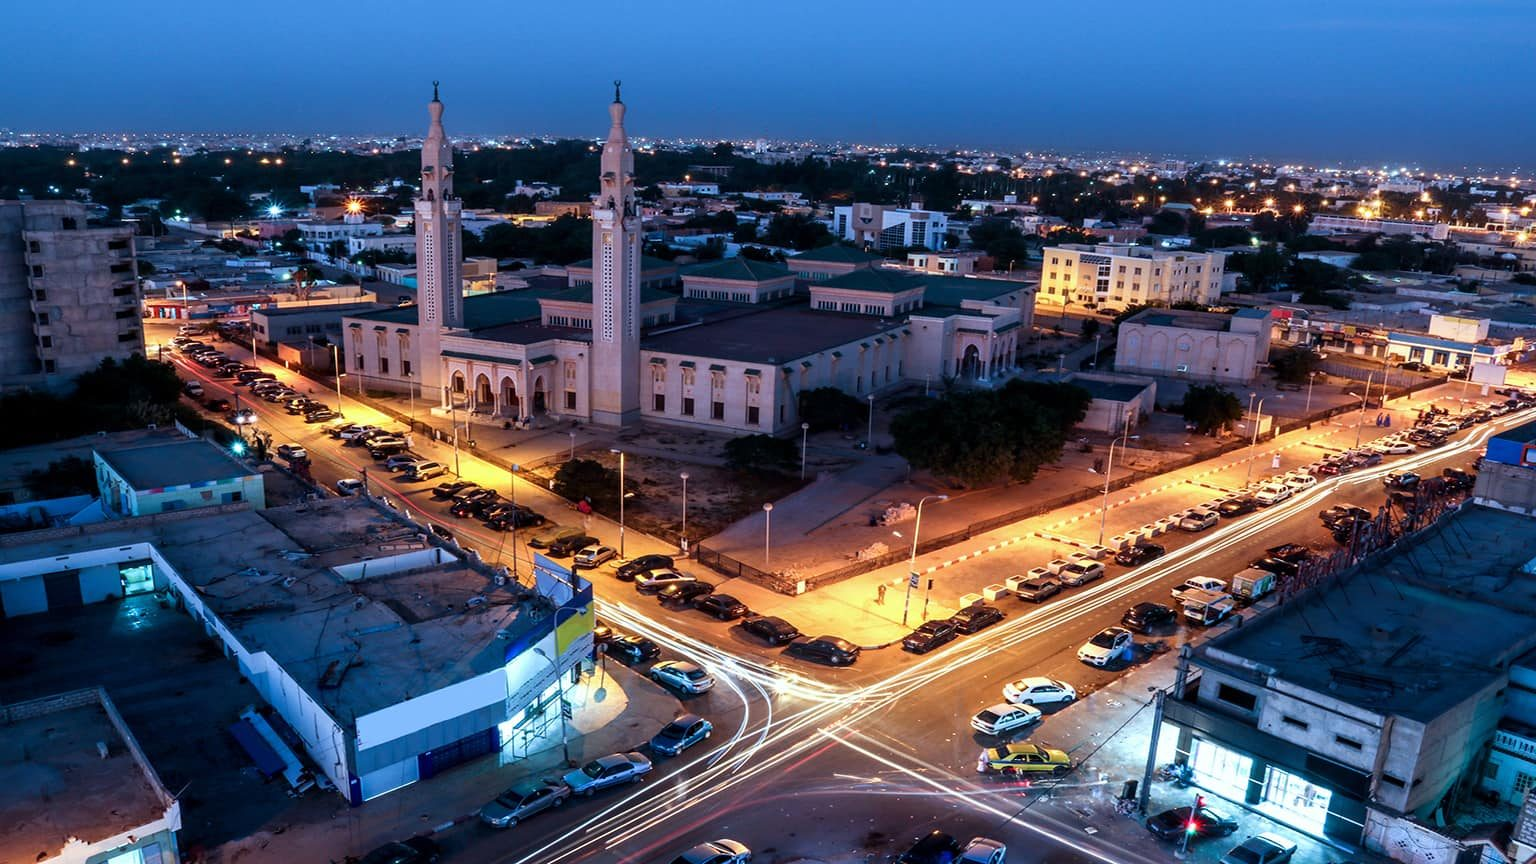 Evening in Nouakchott, Mauritania